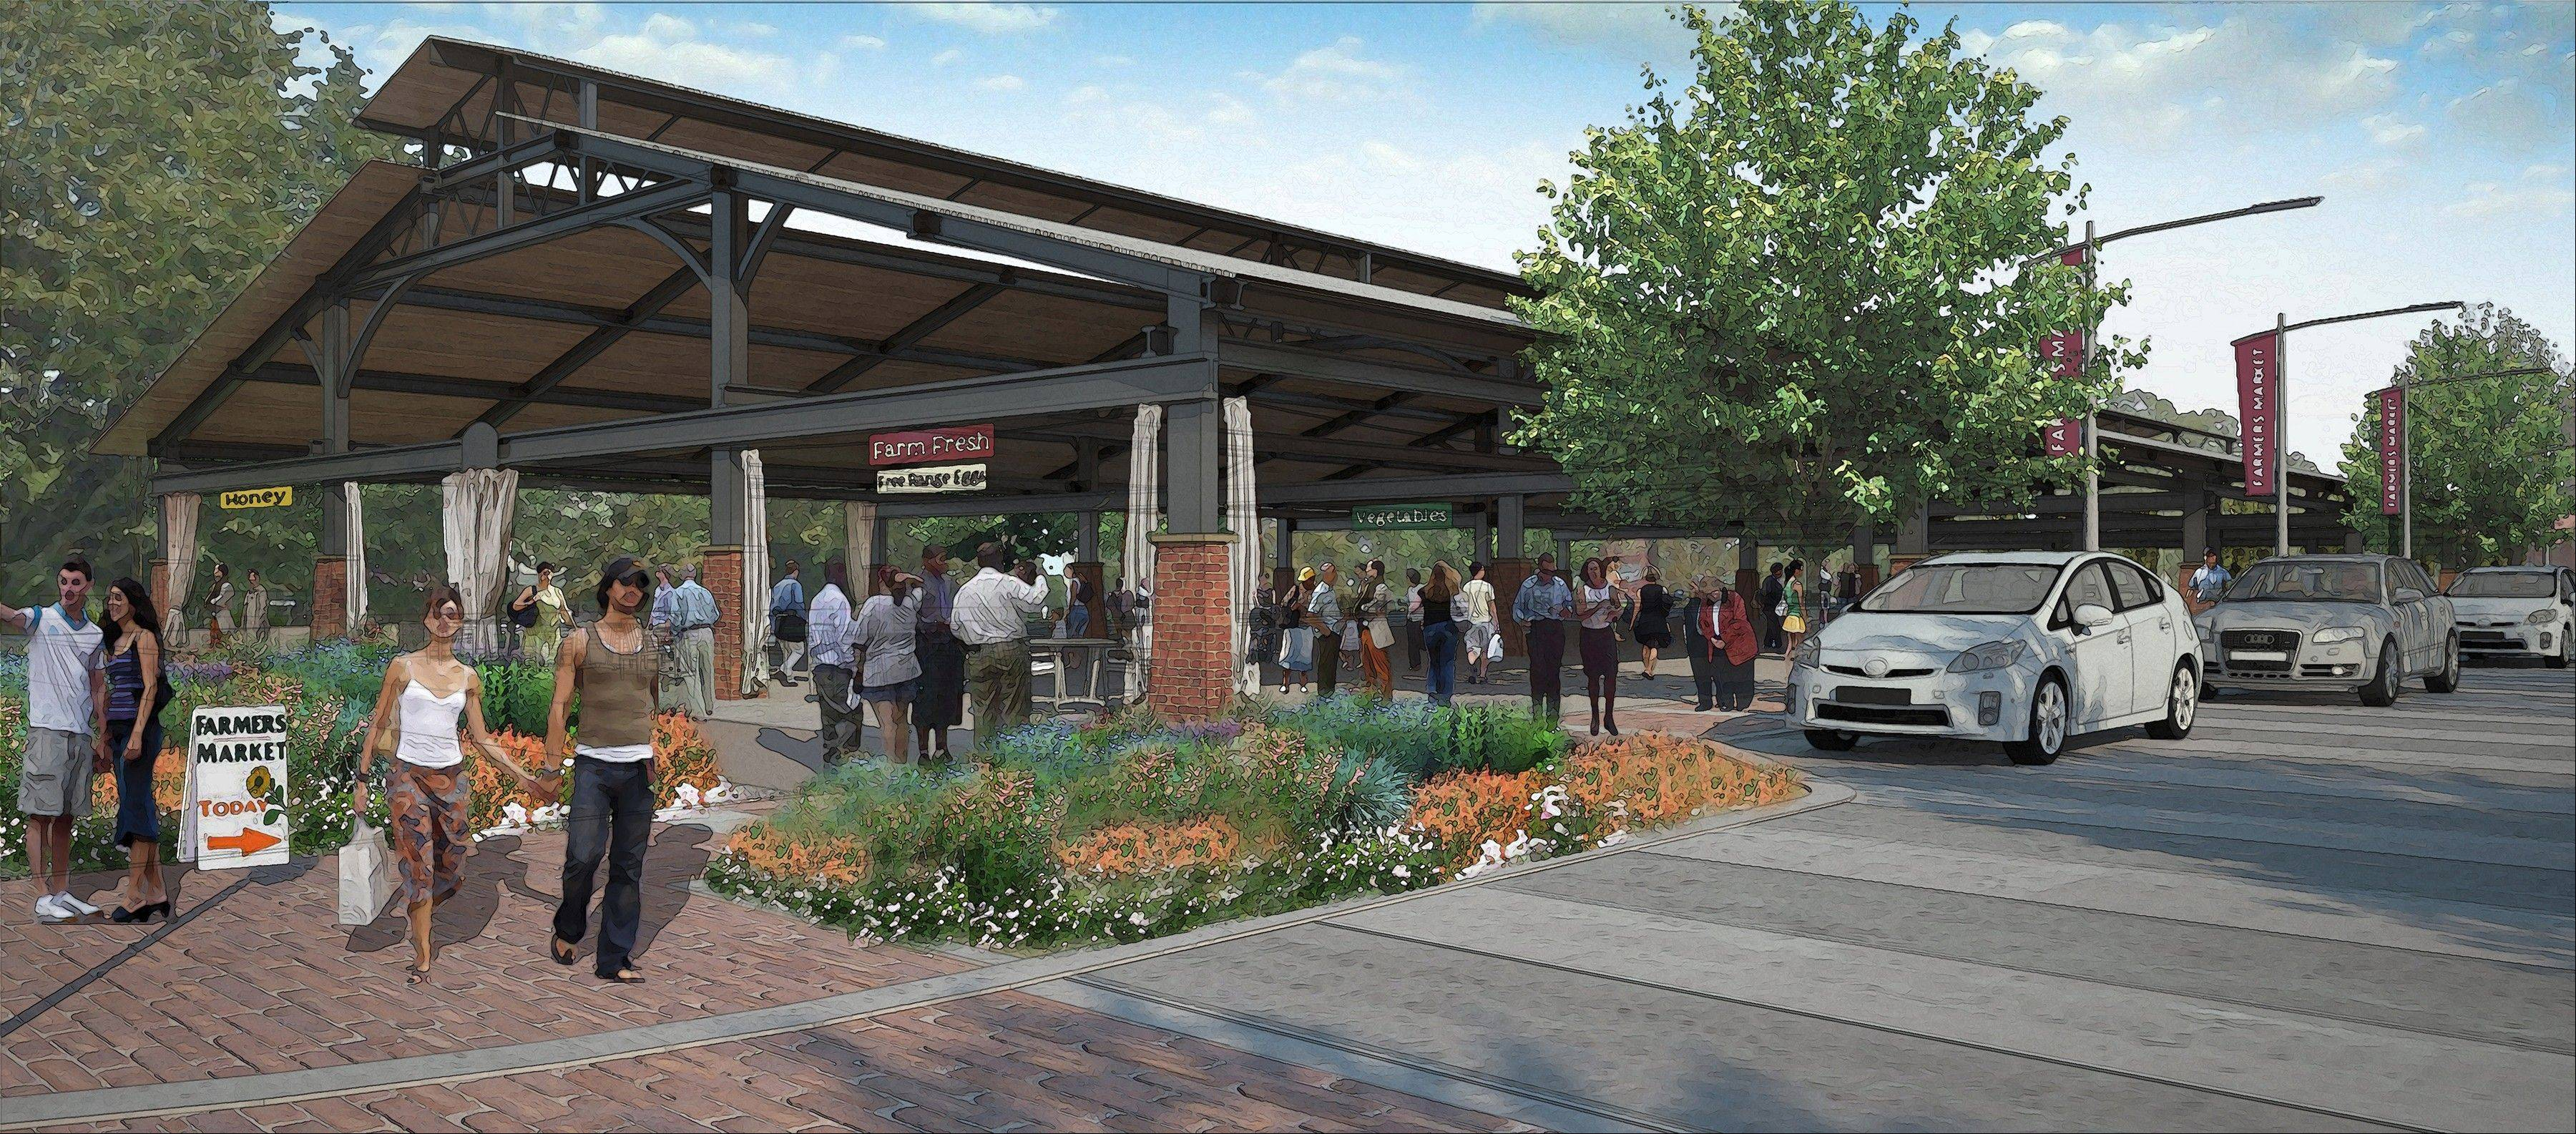 A rendering of the new French Market facility in downtown Wheaton.